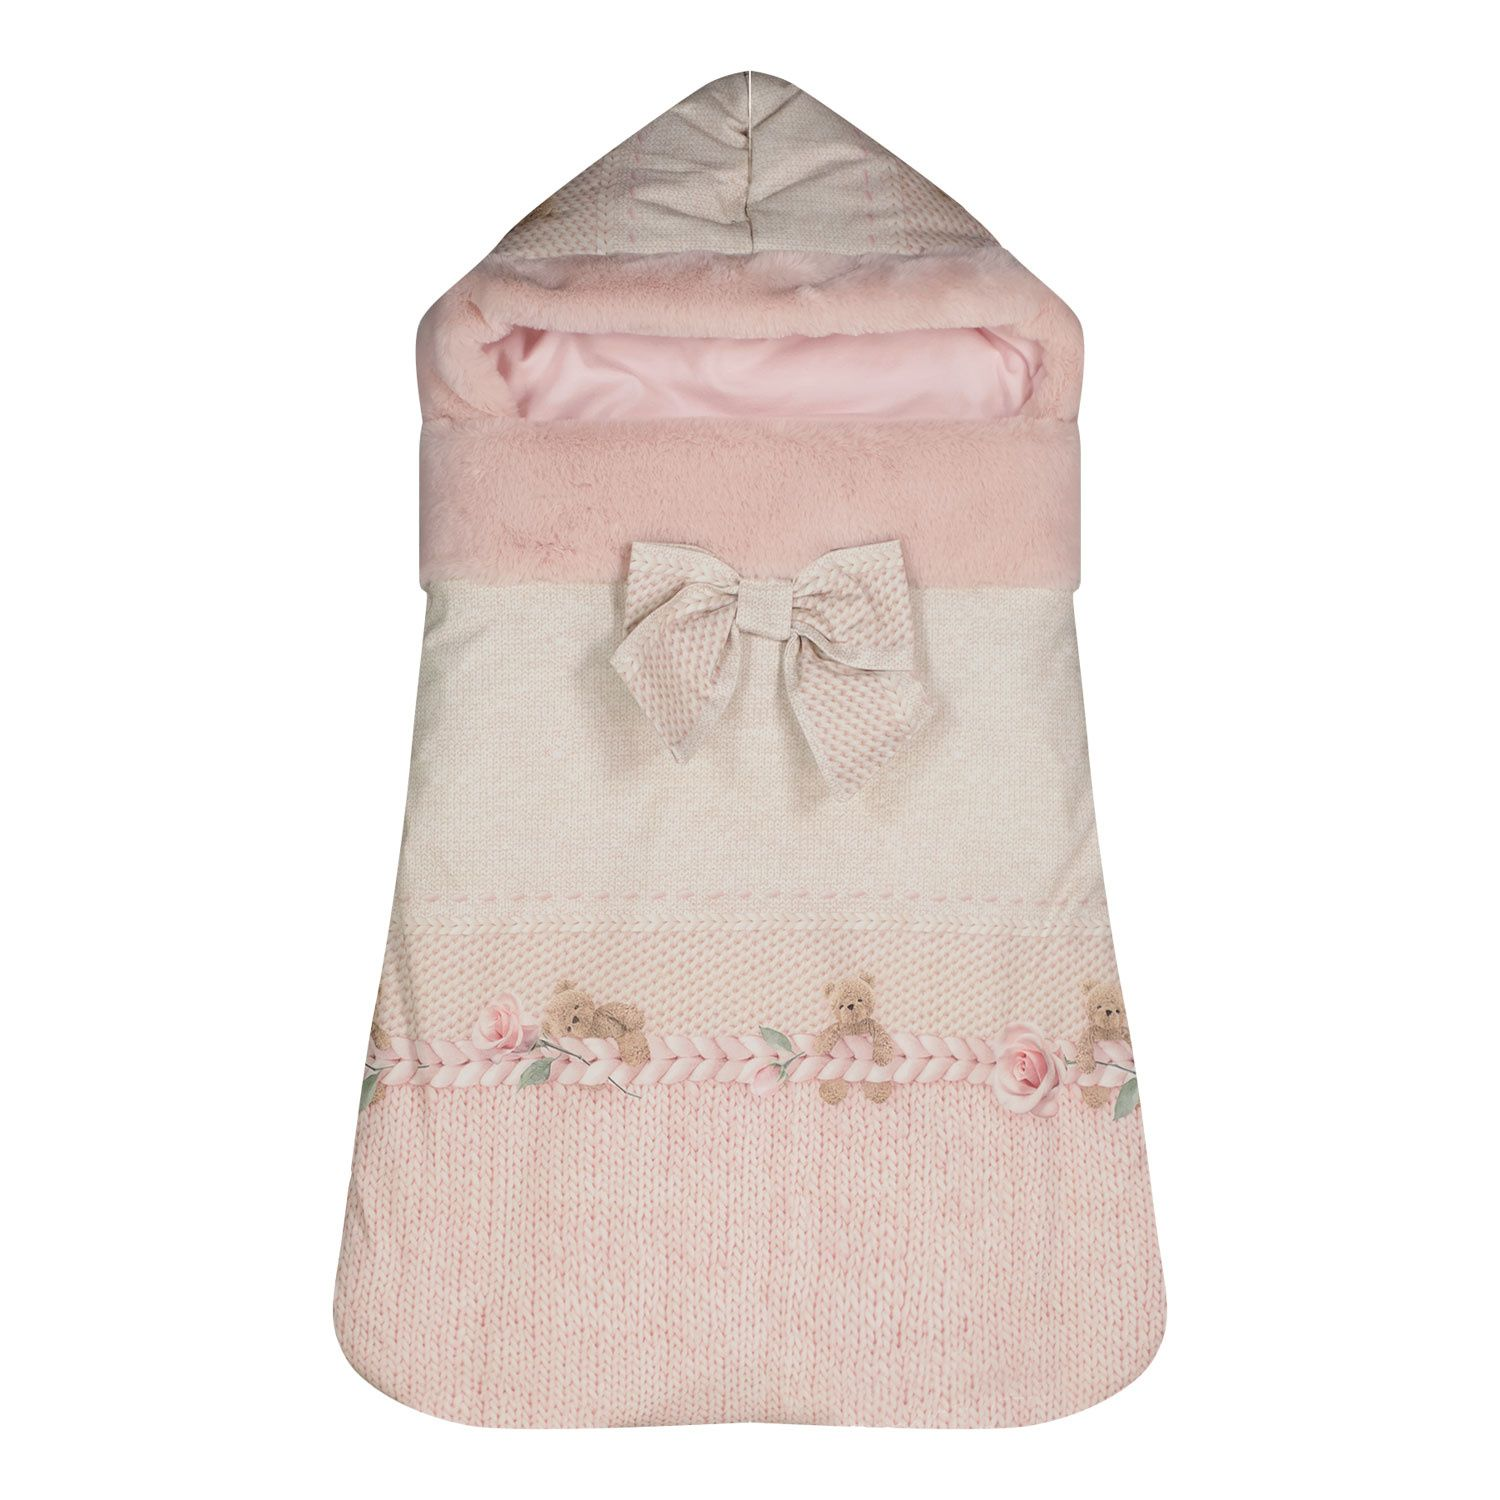 Picture of Lapin 21255222 baby accessory light pink